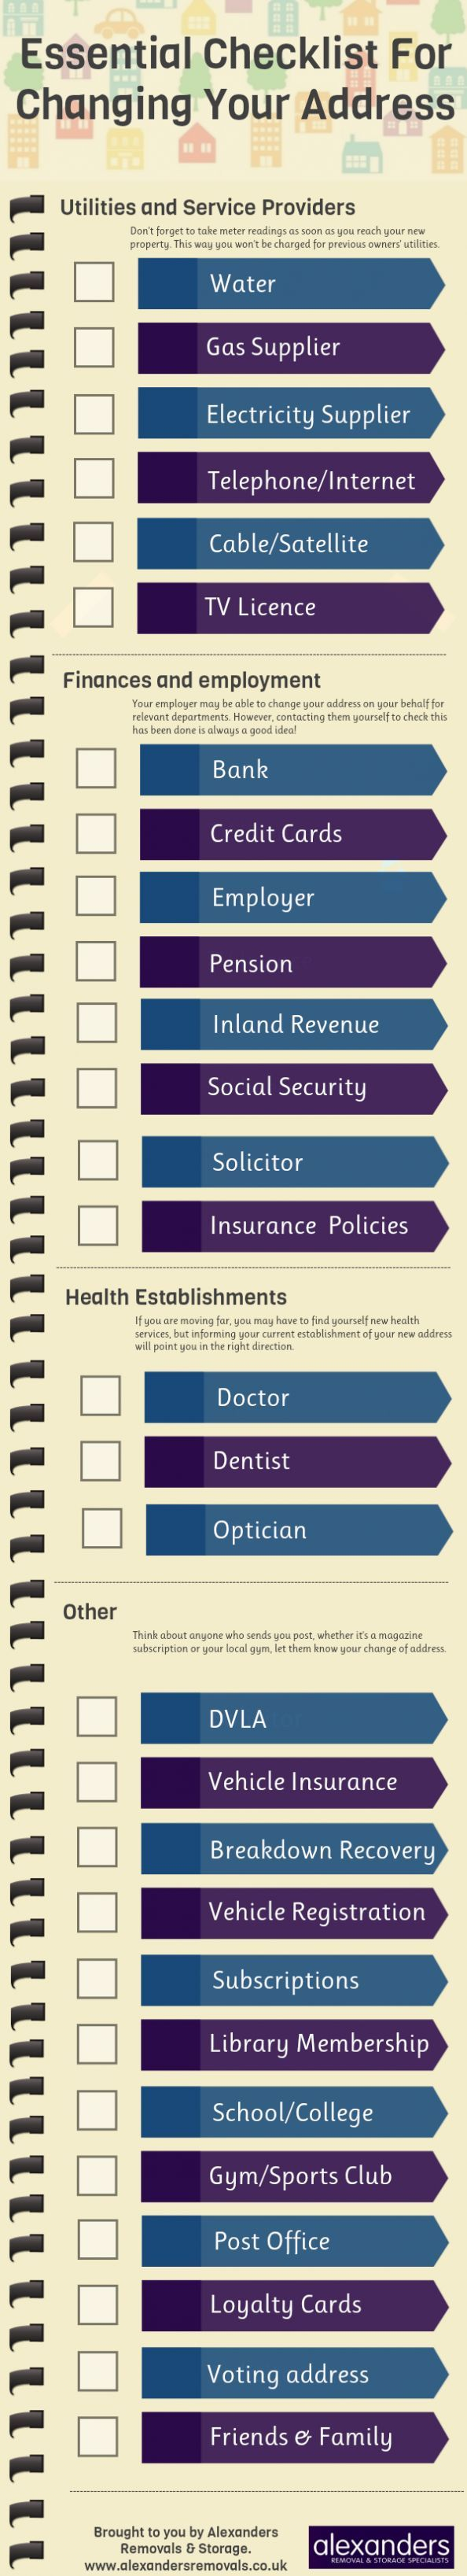 Essential Checklist for Changing Your Address. Robyn Porter, REALTOR Washington DC metro area real estate, #homes #Infographic